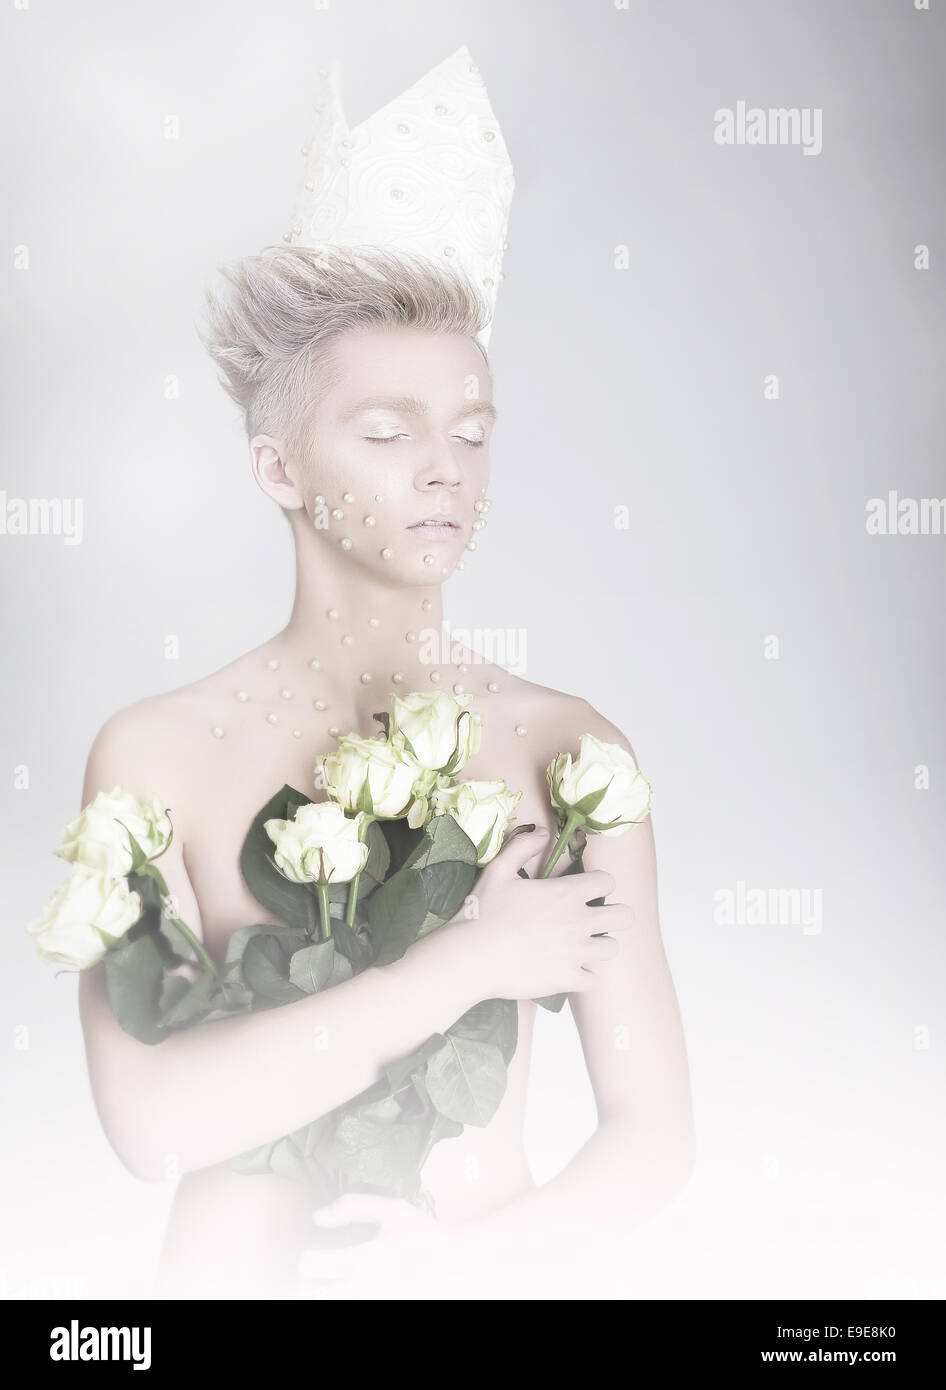 Daydreaming Man holding Bouquet de fleurs Photo Stock